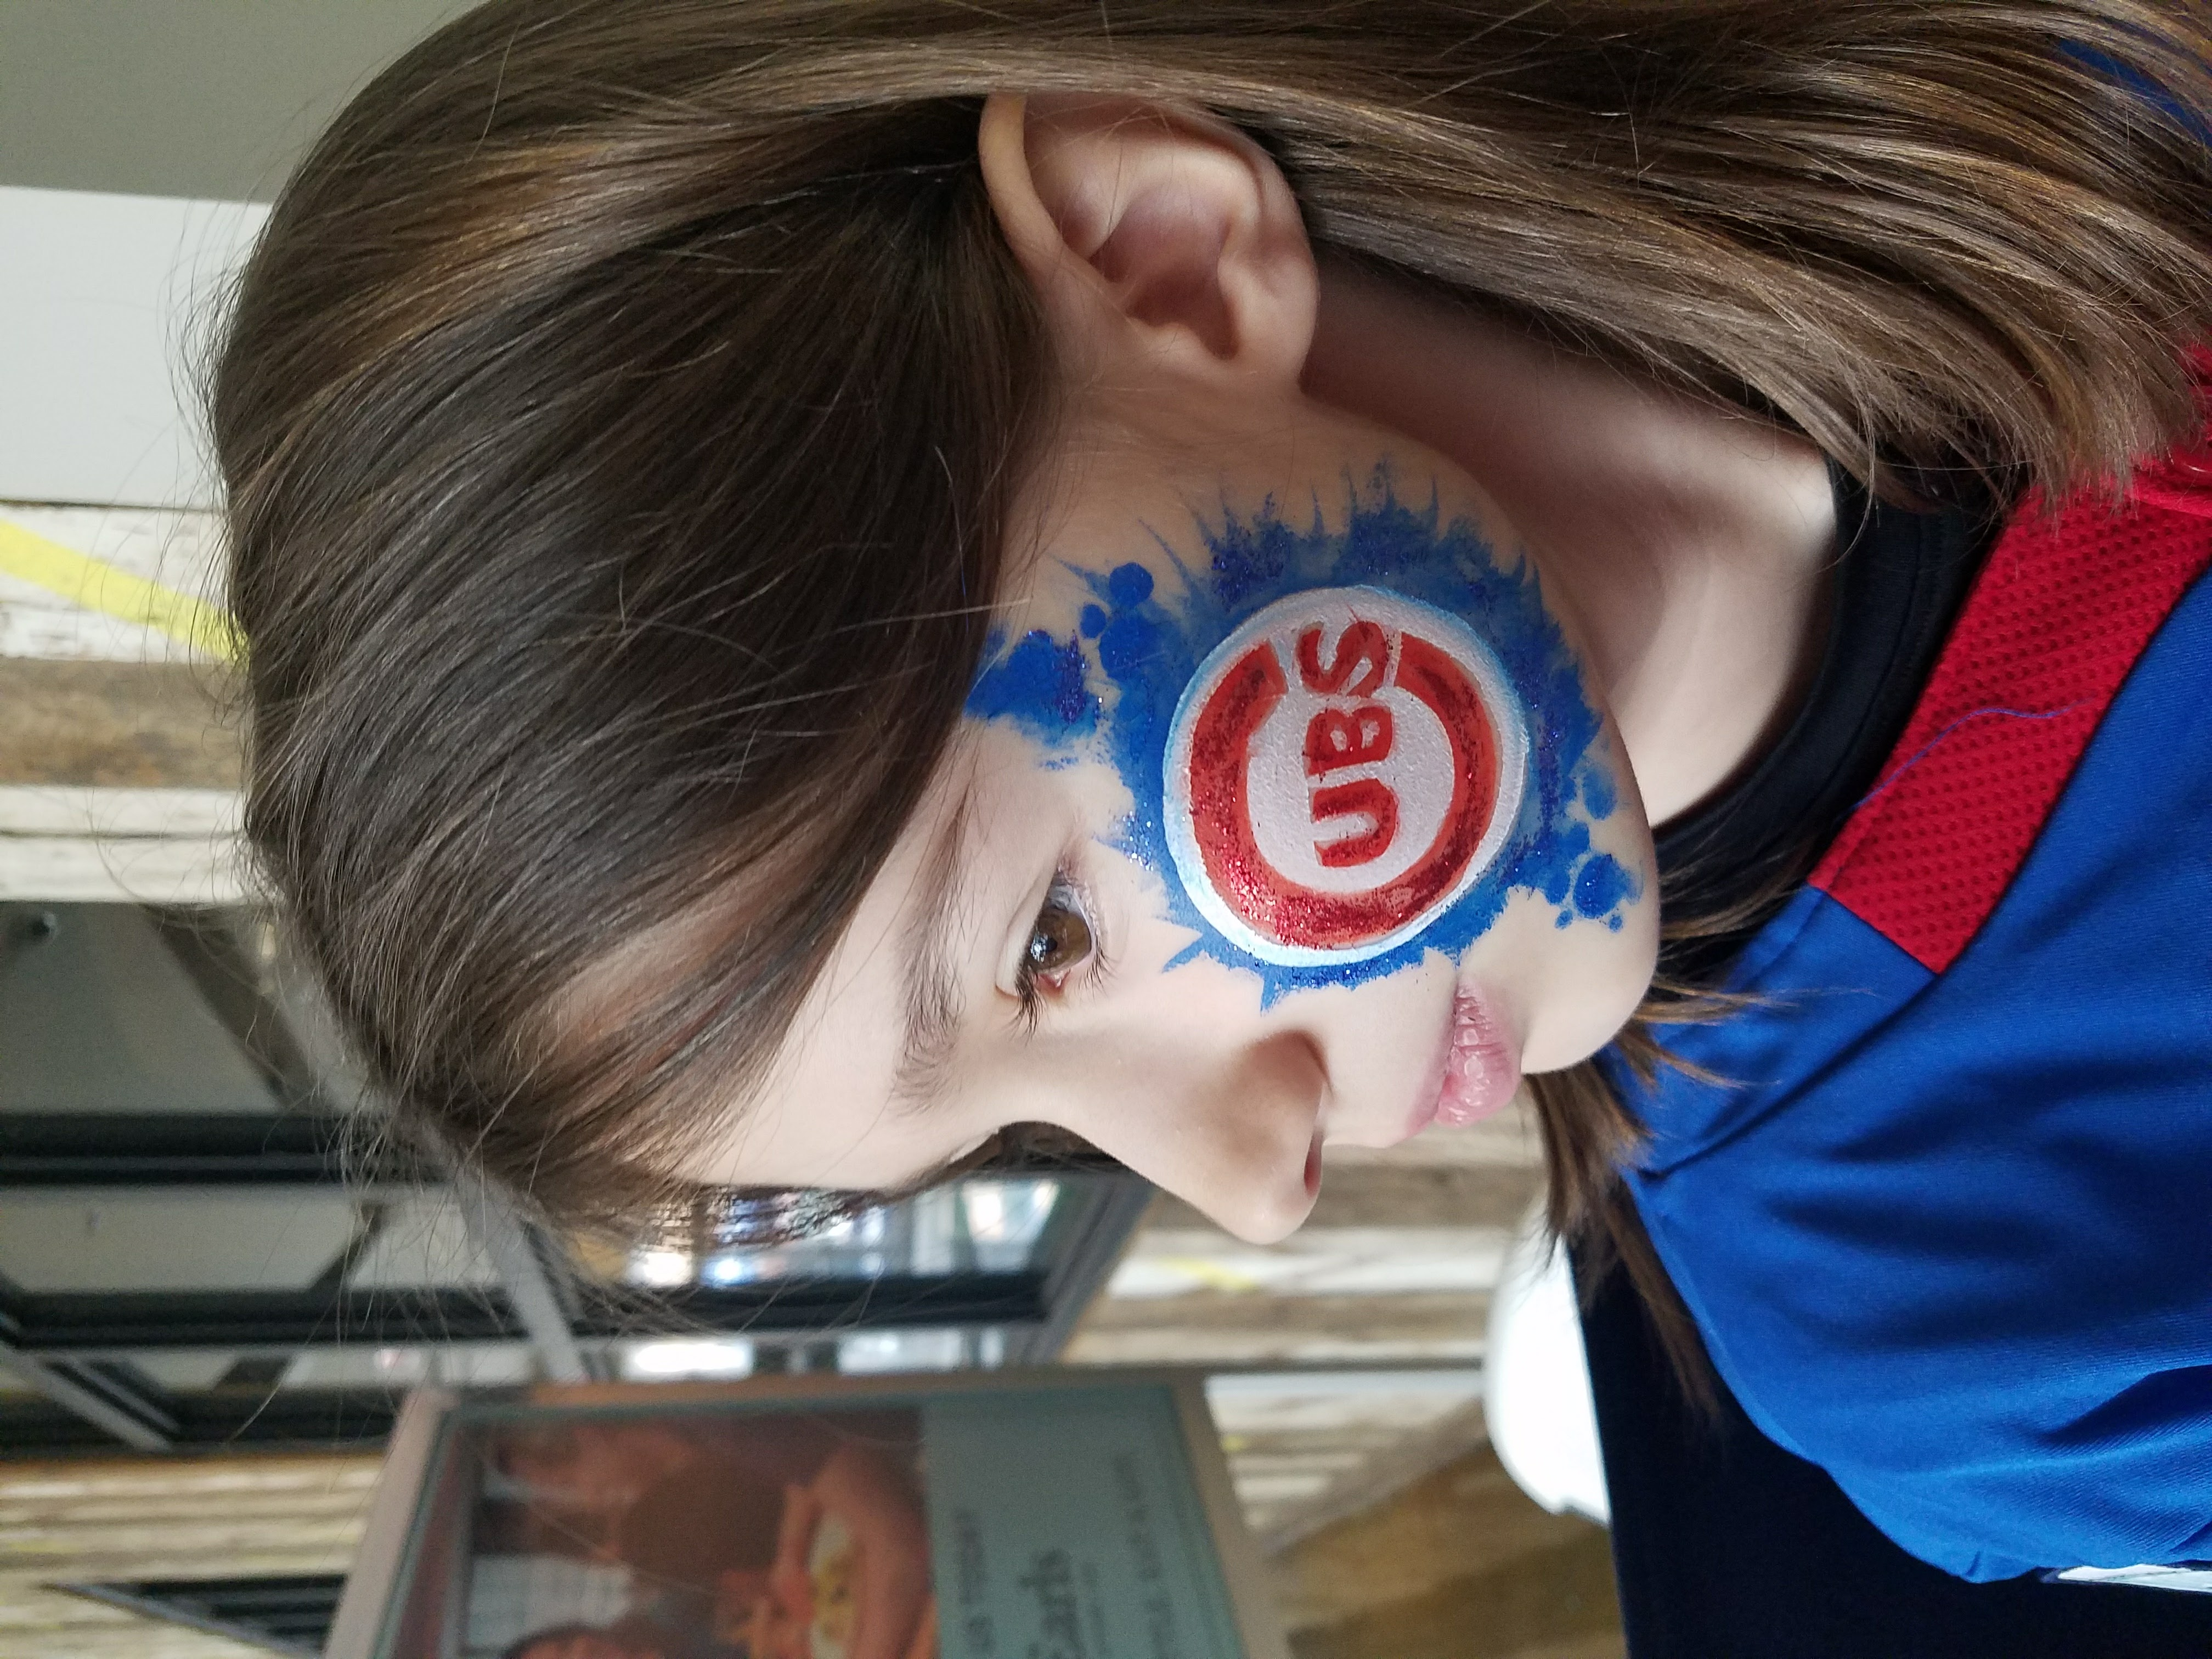 Chicago Cubs baseball face paint